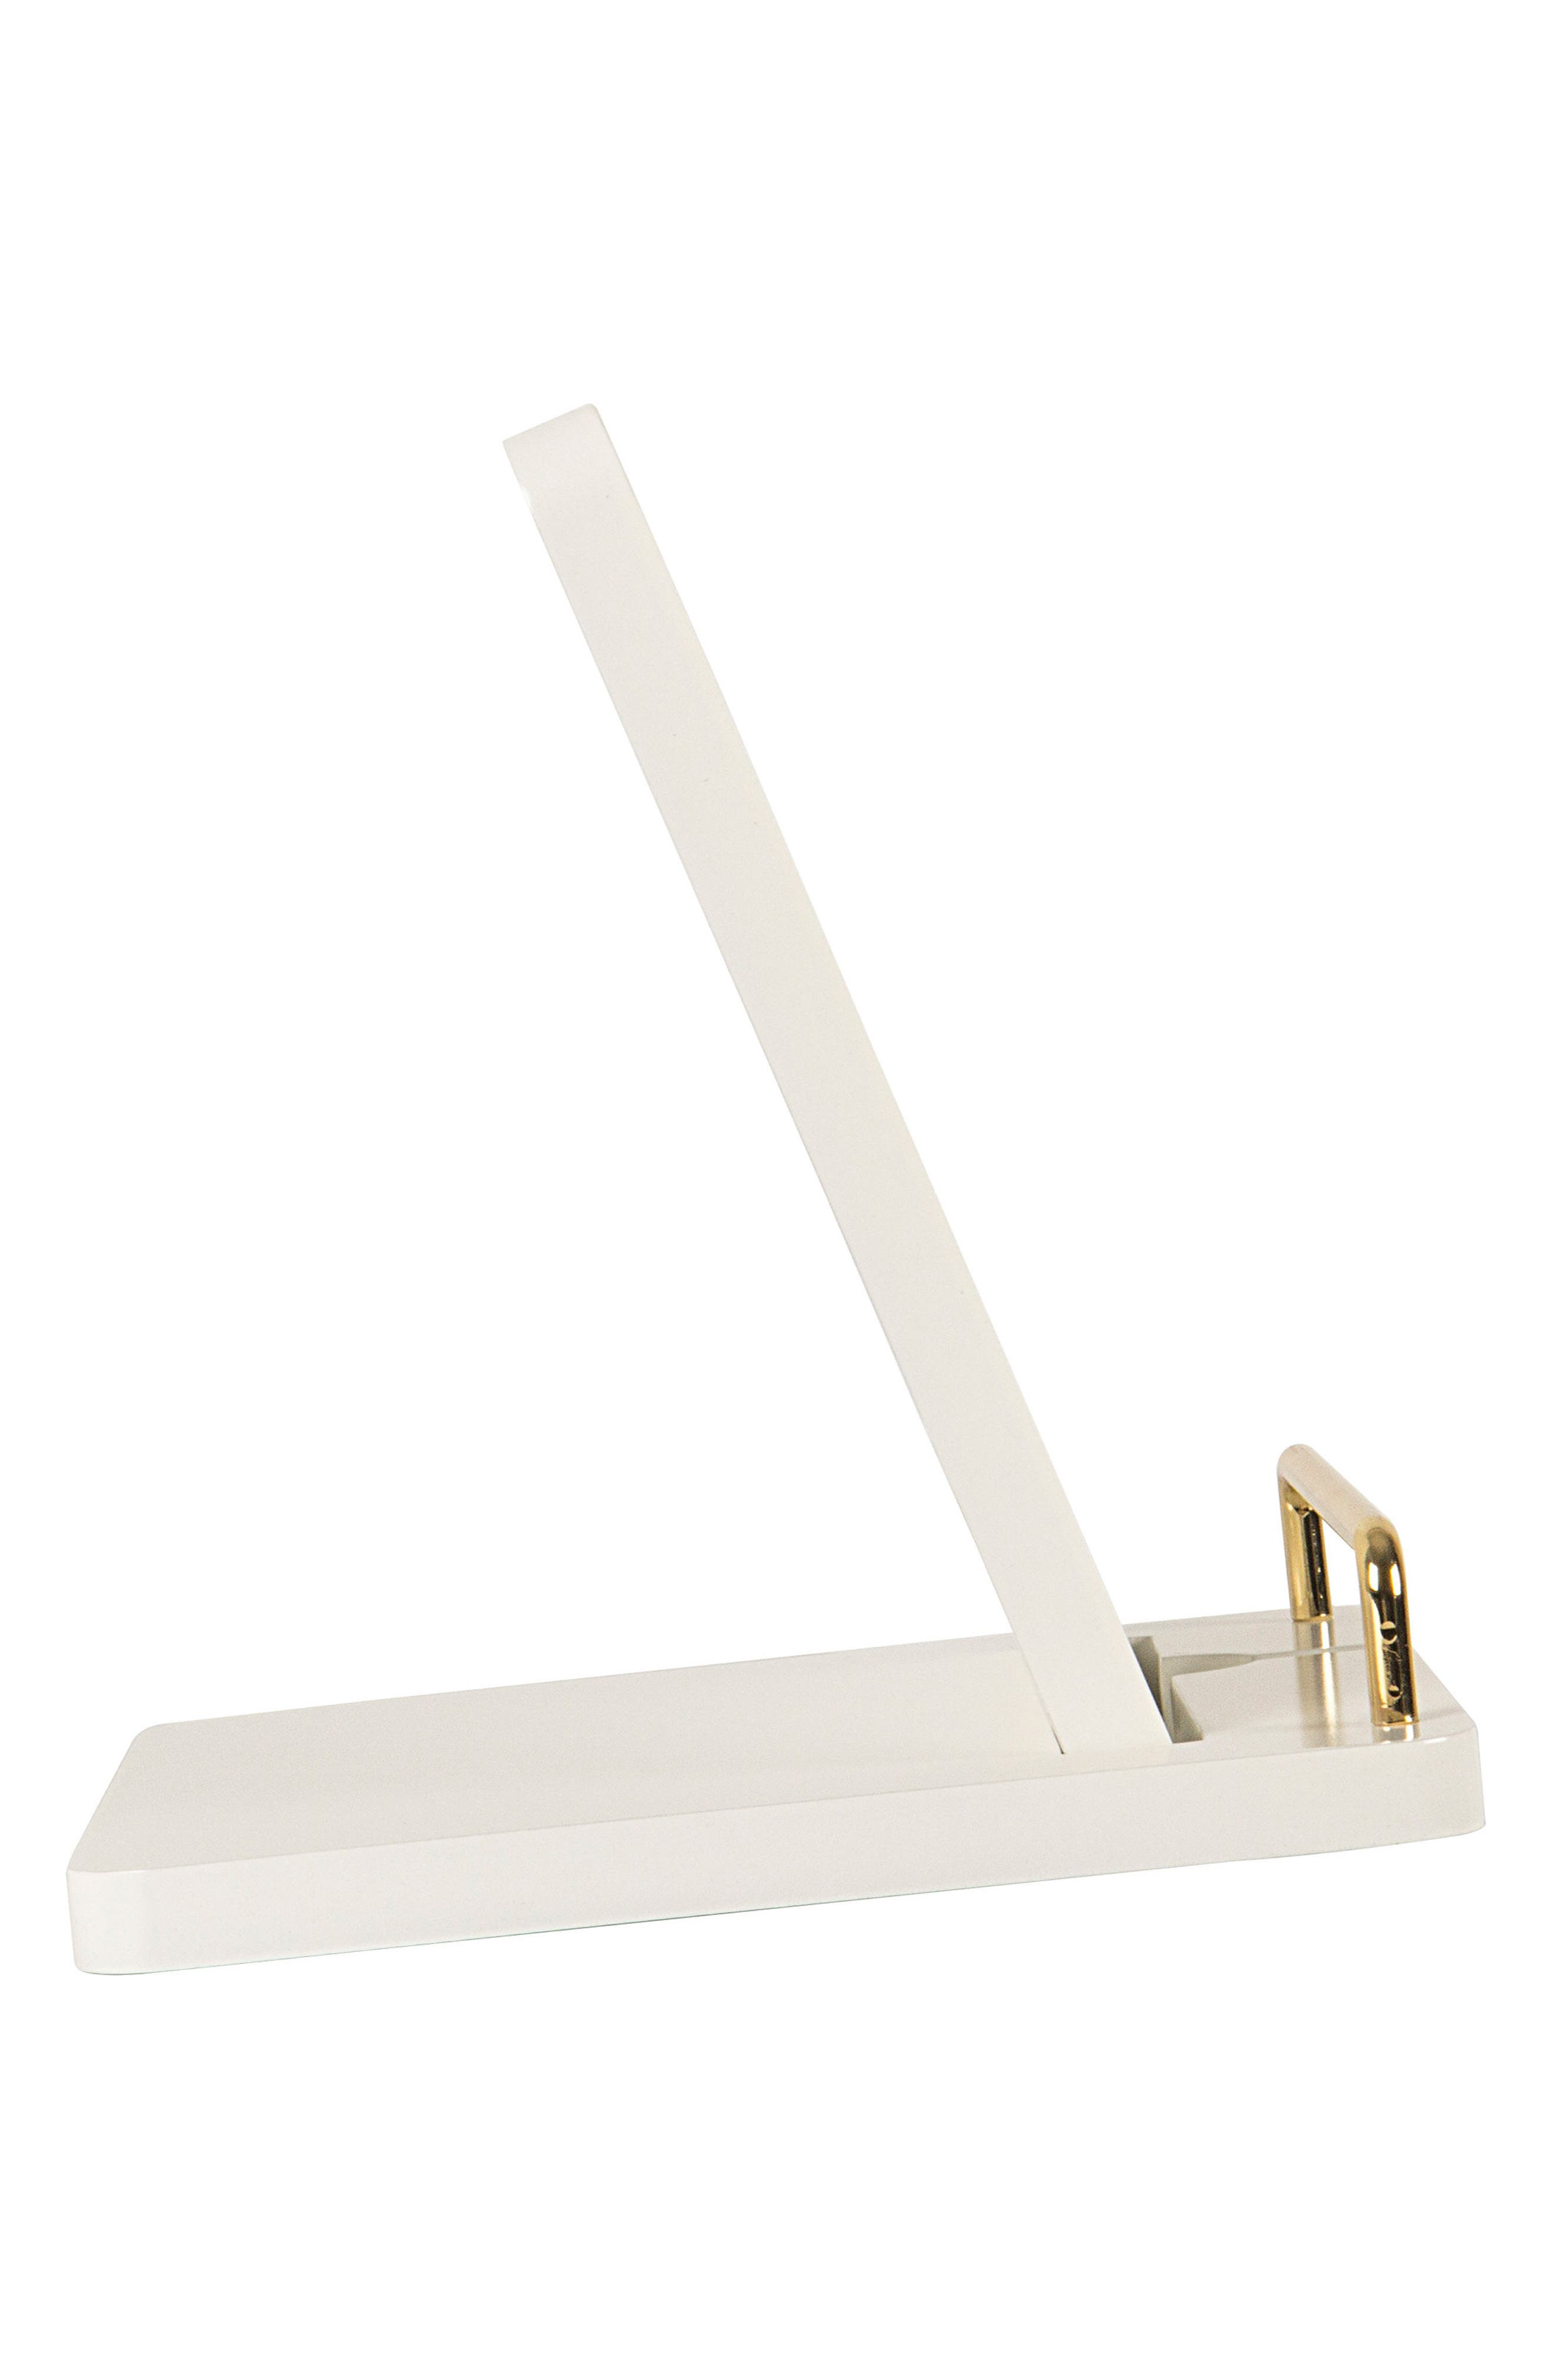 Boss Lady Lacquer Docking Station,                             Alternate thumbnail 8, color,                             White